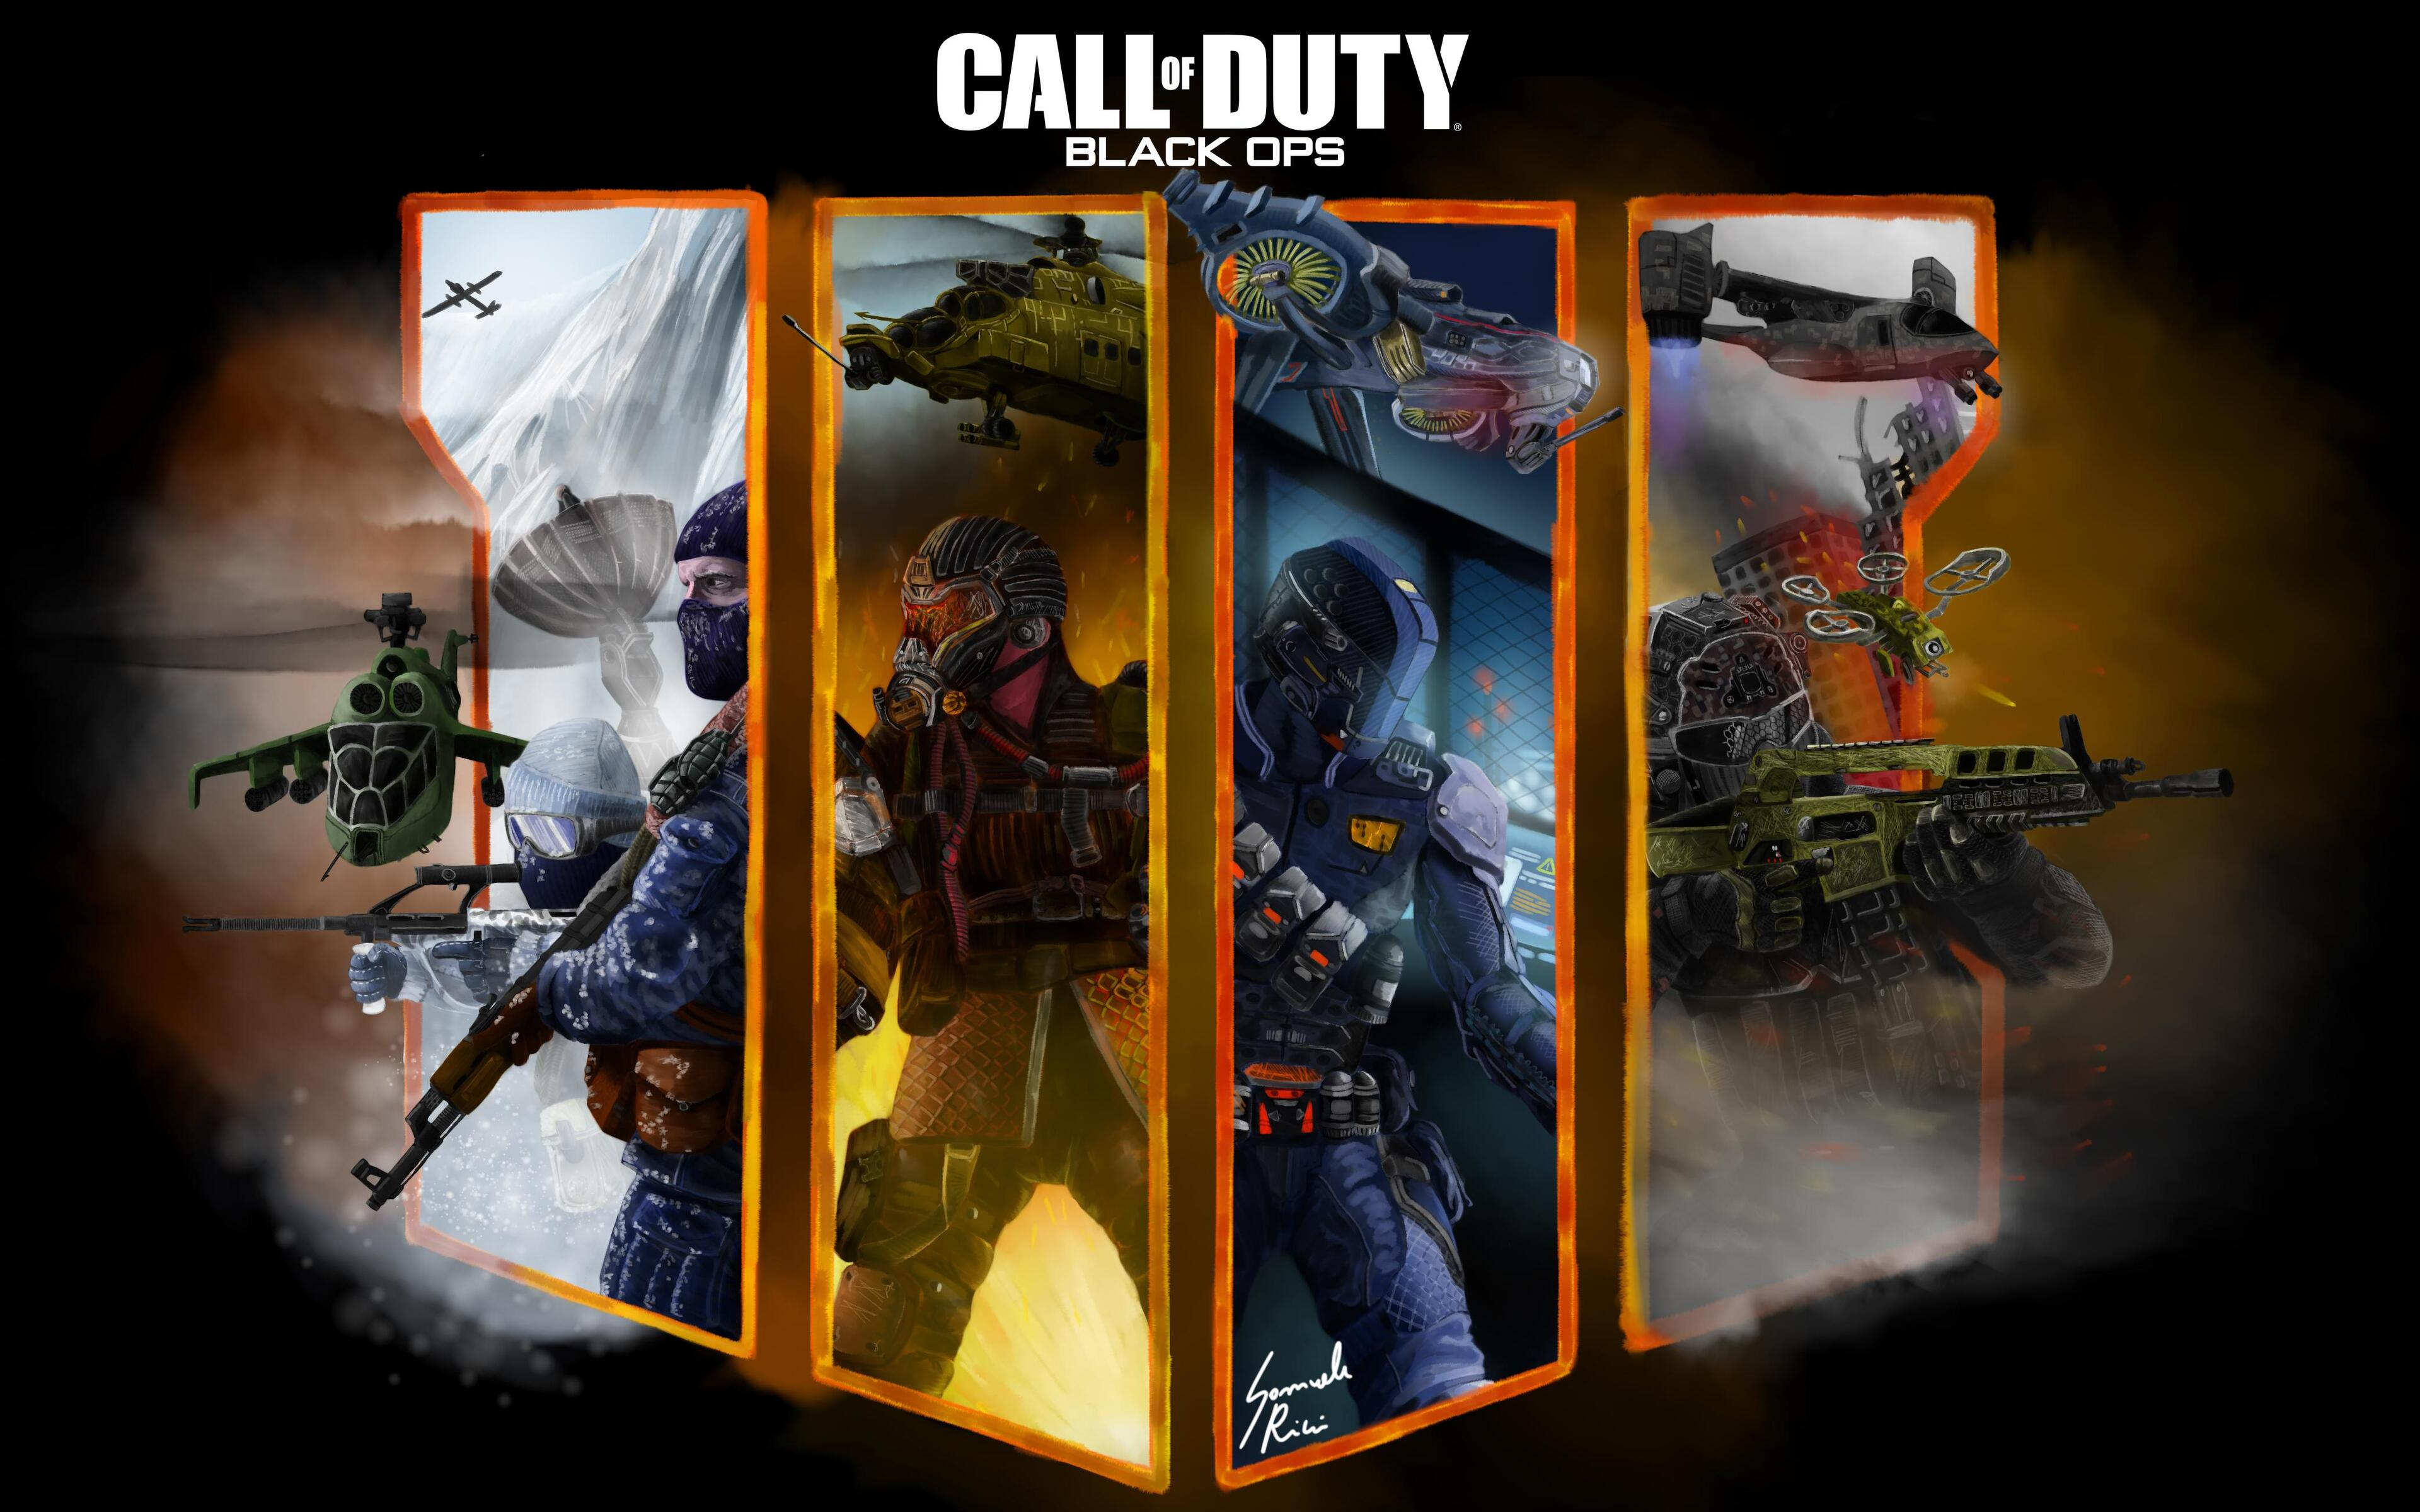 3840x2400 Call Of Duty Black Ops 4 Fan Art 4k 4k Hd 4k Wallpapers Images Backgrounds Photos And Pictures